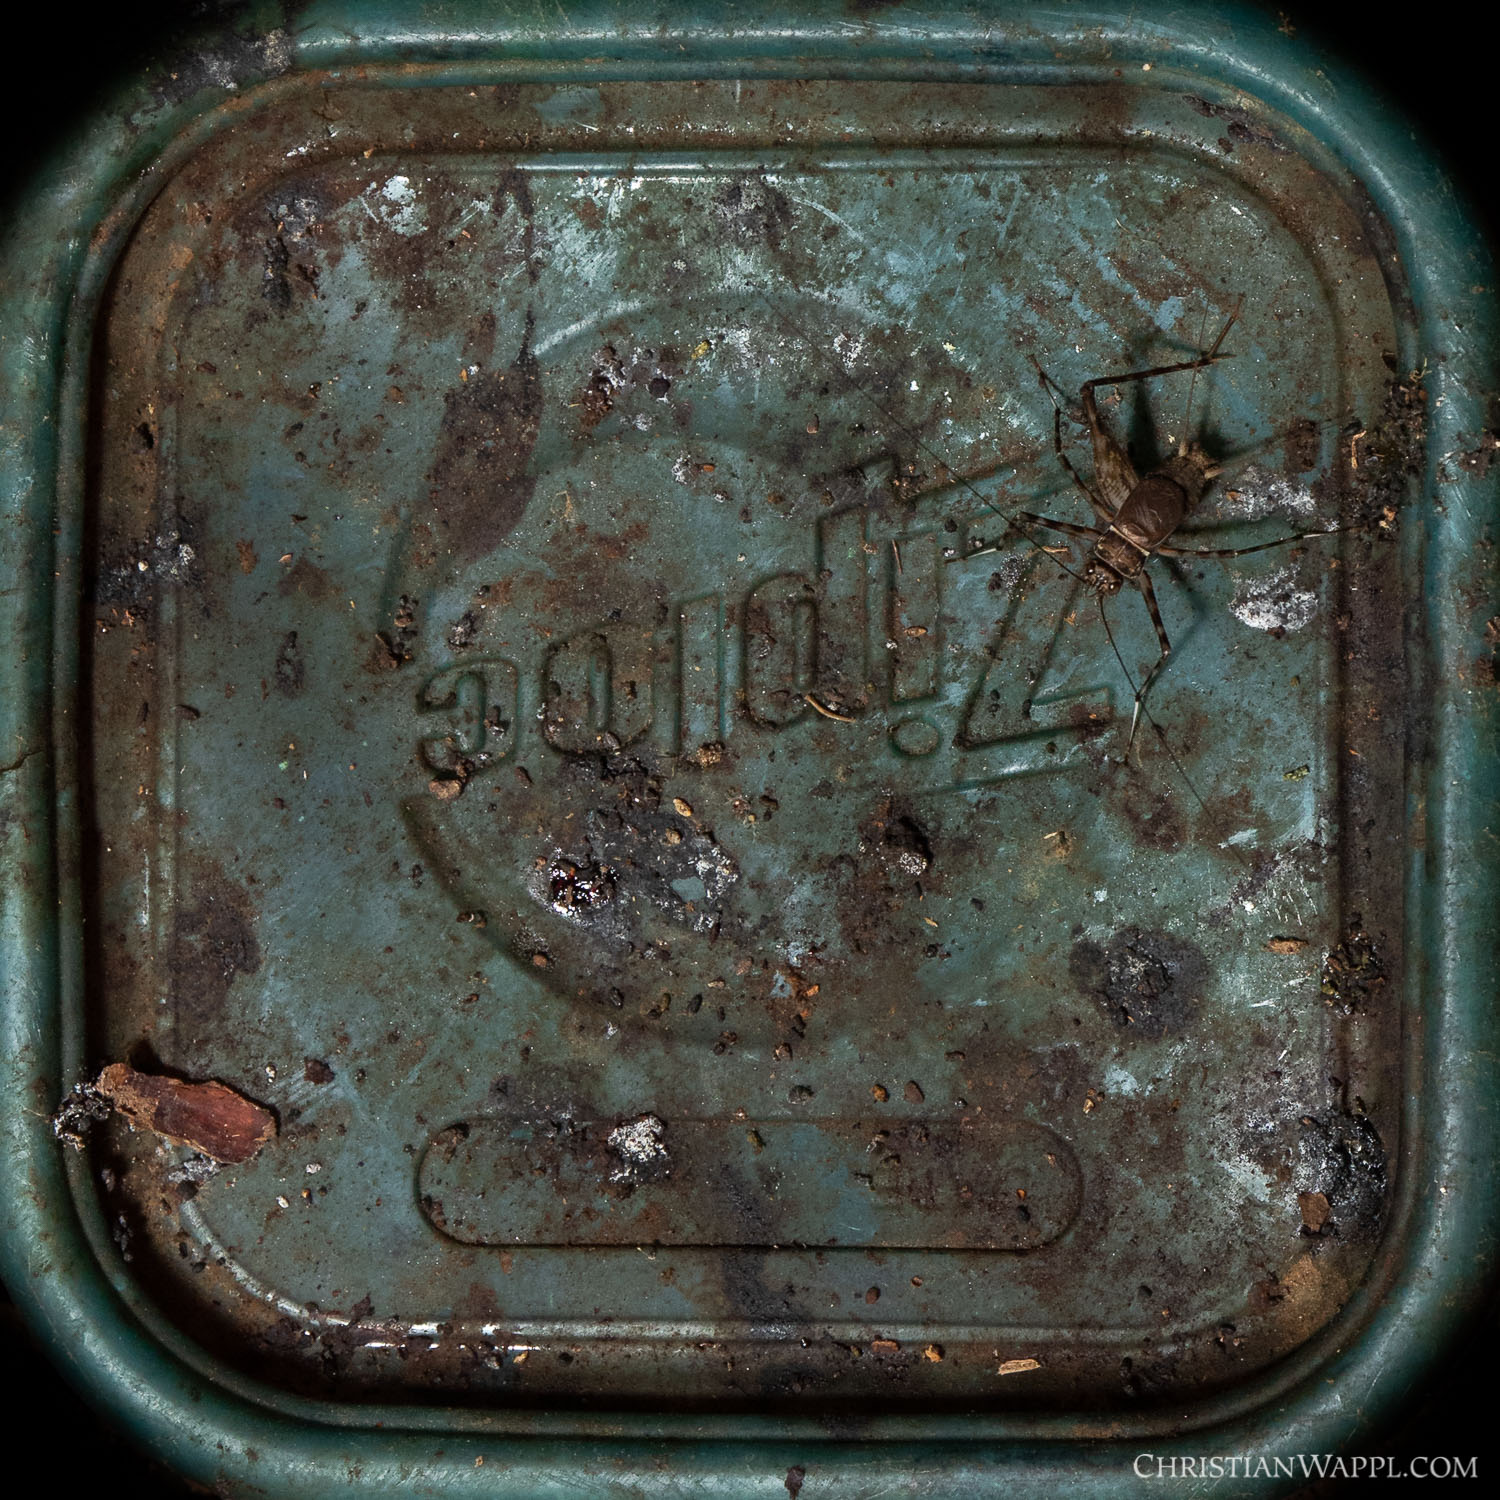 Cave-dwelling cricket on a discarded lunch box